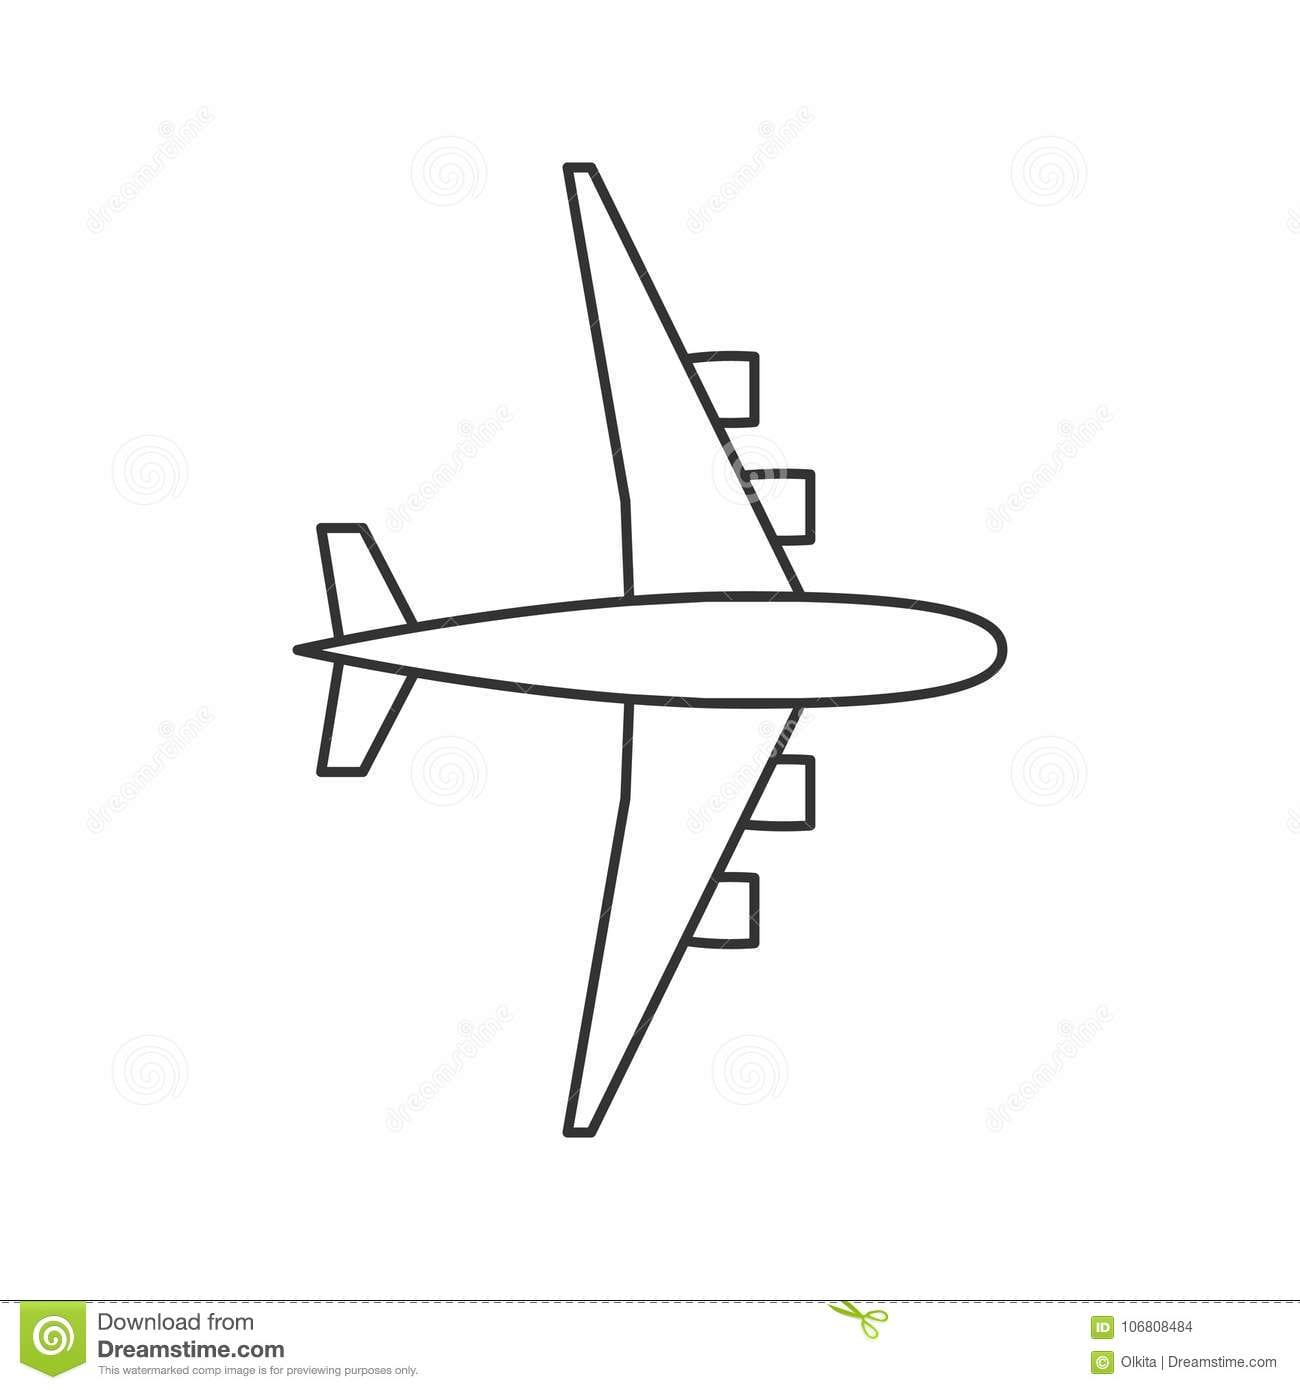 Black Outline Isolated Airplane On White Background  Line View